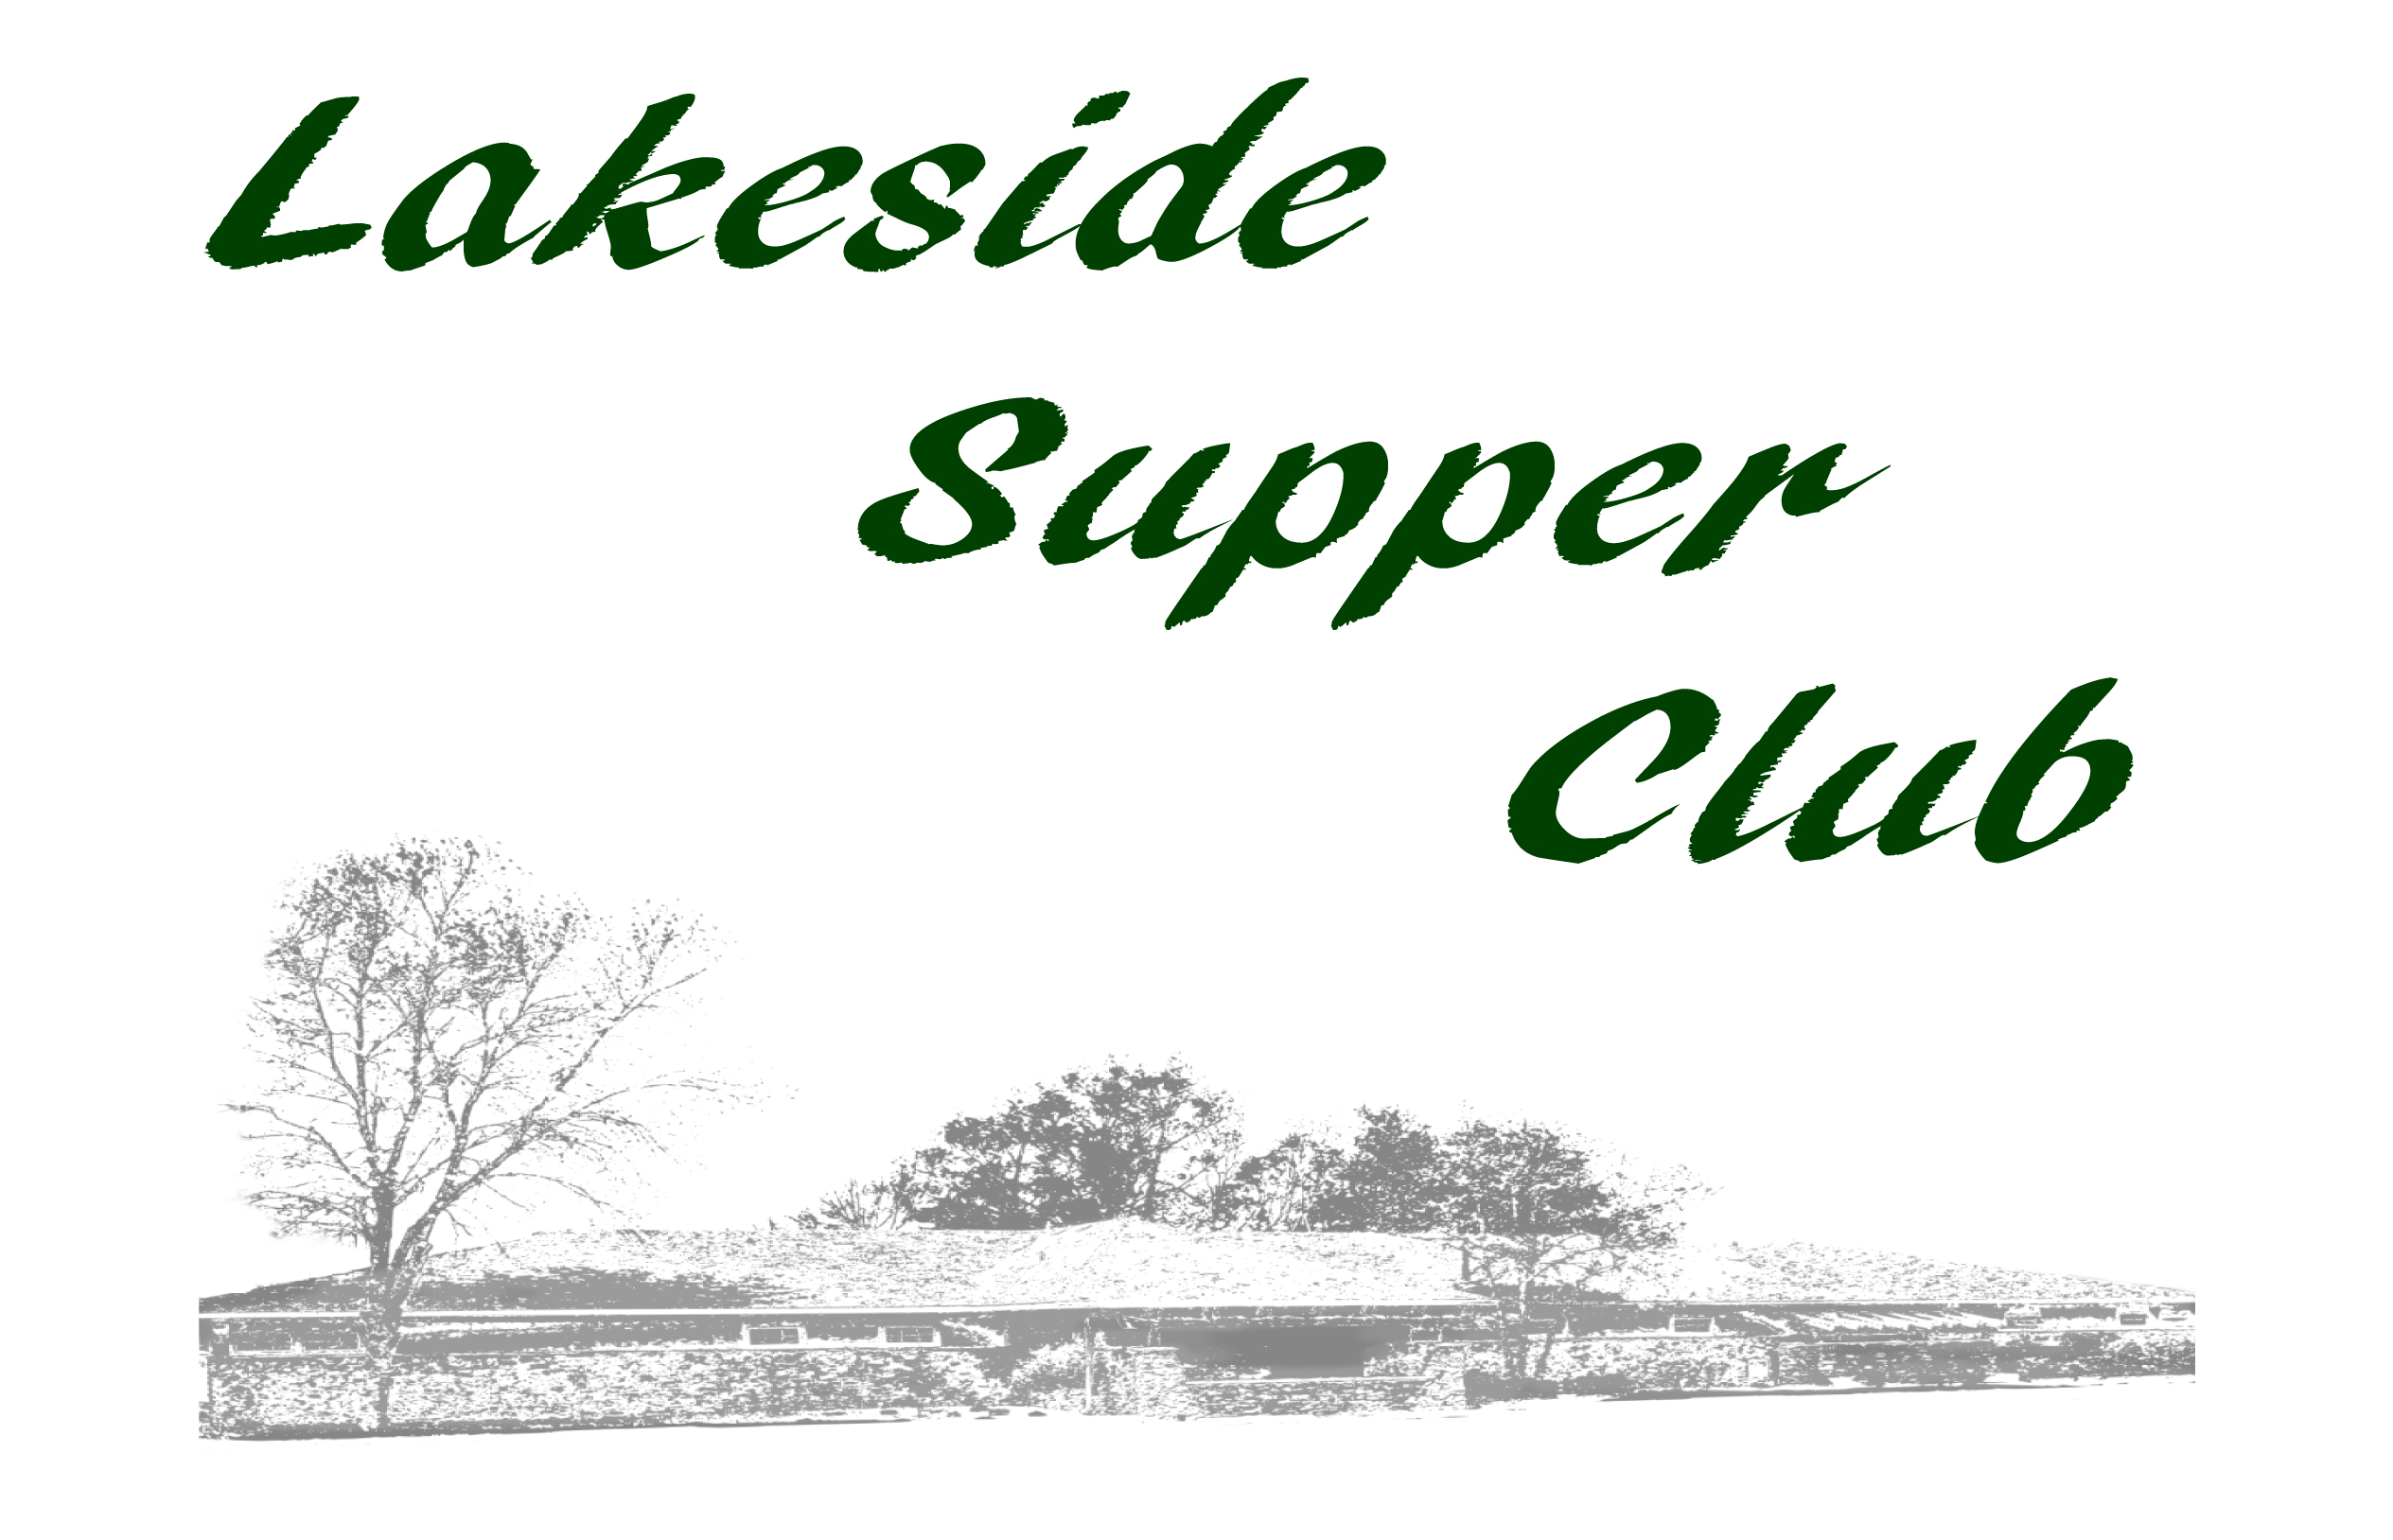 Lakeside Supper Club